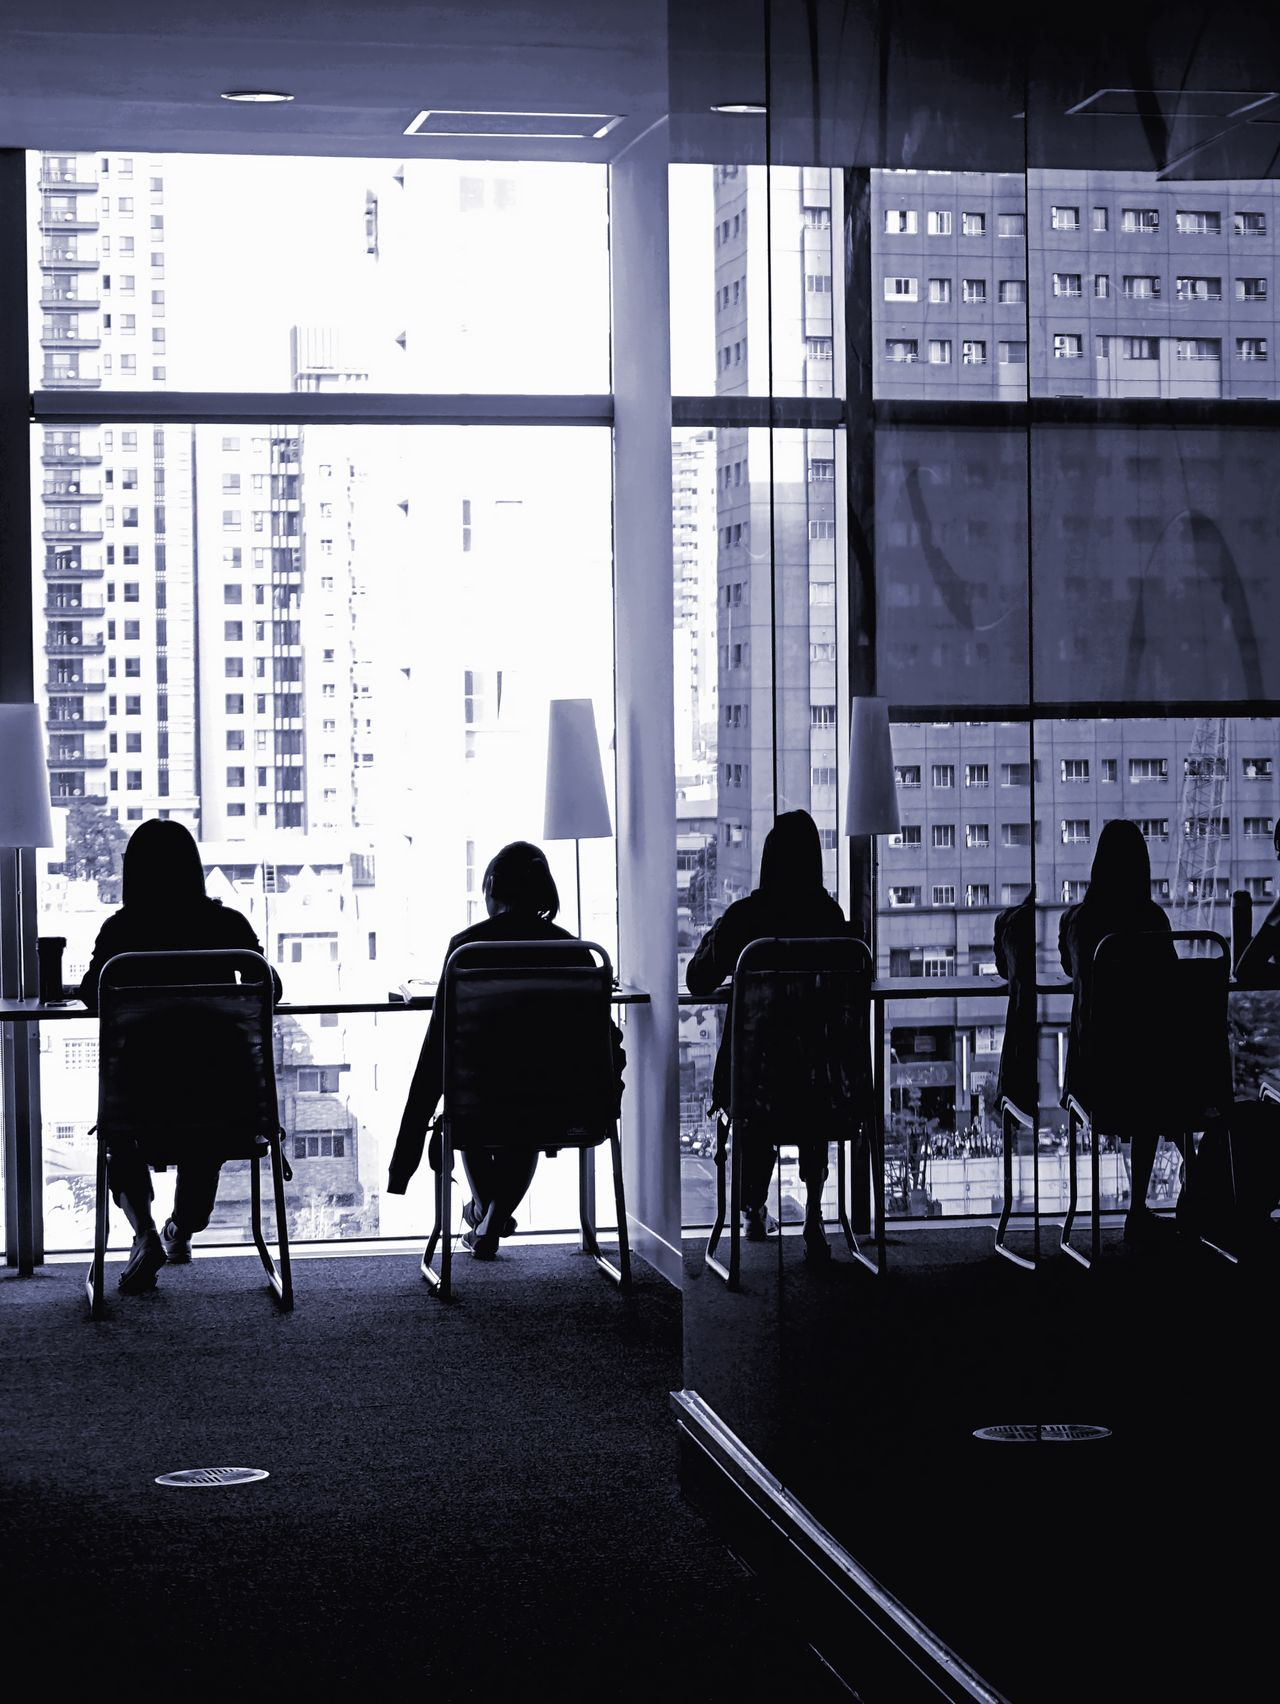 Monochrome image of outline of people reading by a large glass building facade City Life Facades Library Medium Group Of People Modern Monochrome Reading Books Silhouettes Students Studying Hard